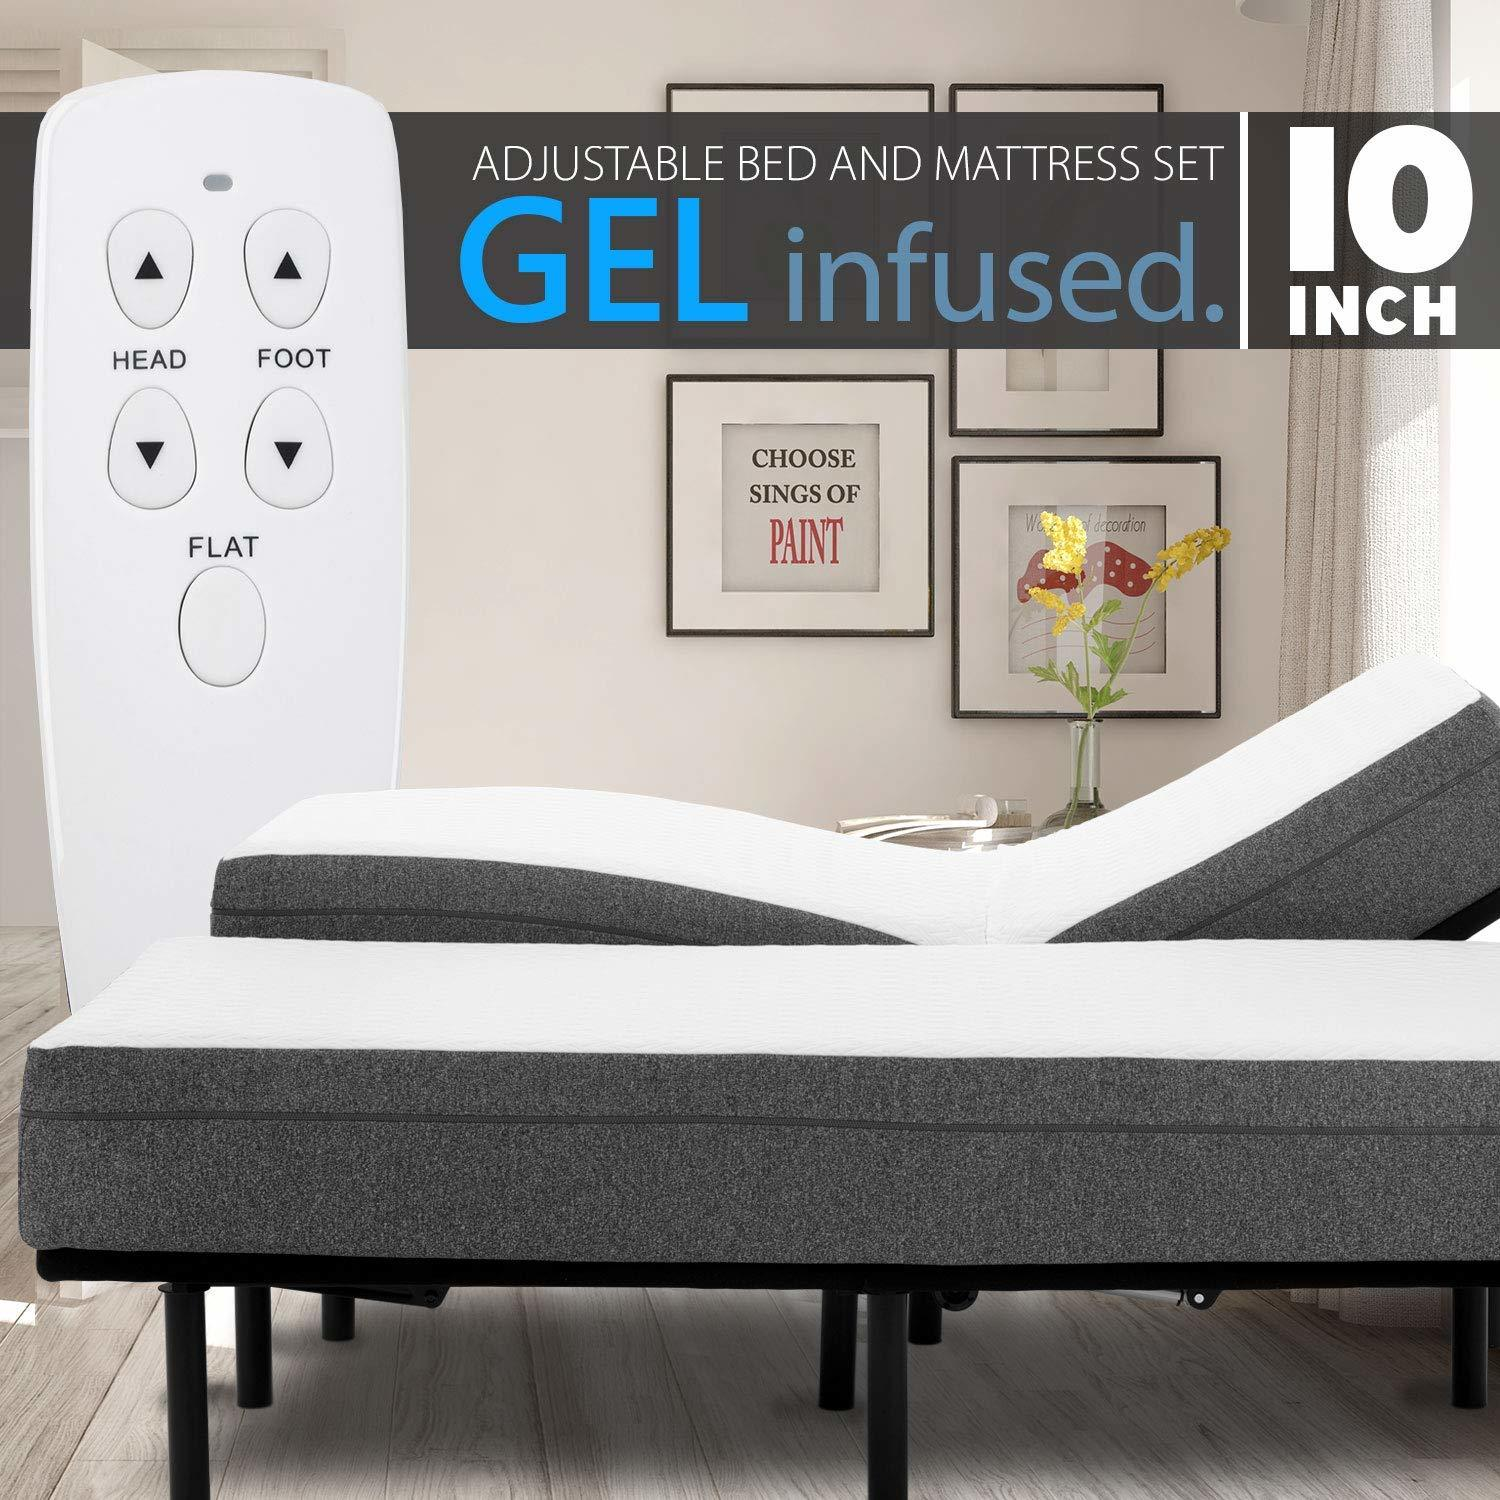 Blissful Nights 10 Inch Gel Infused Medium Firm Memory Foam Mattress with Adjustable Bed Frame Combo